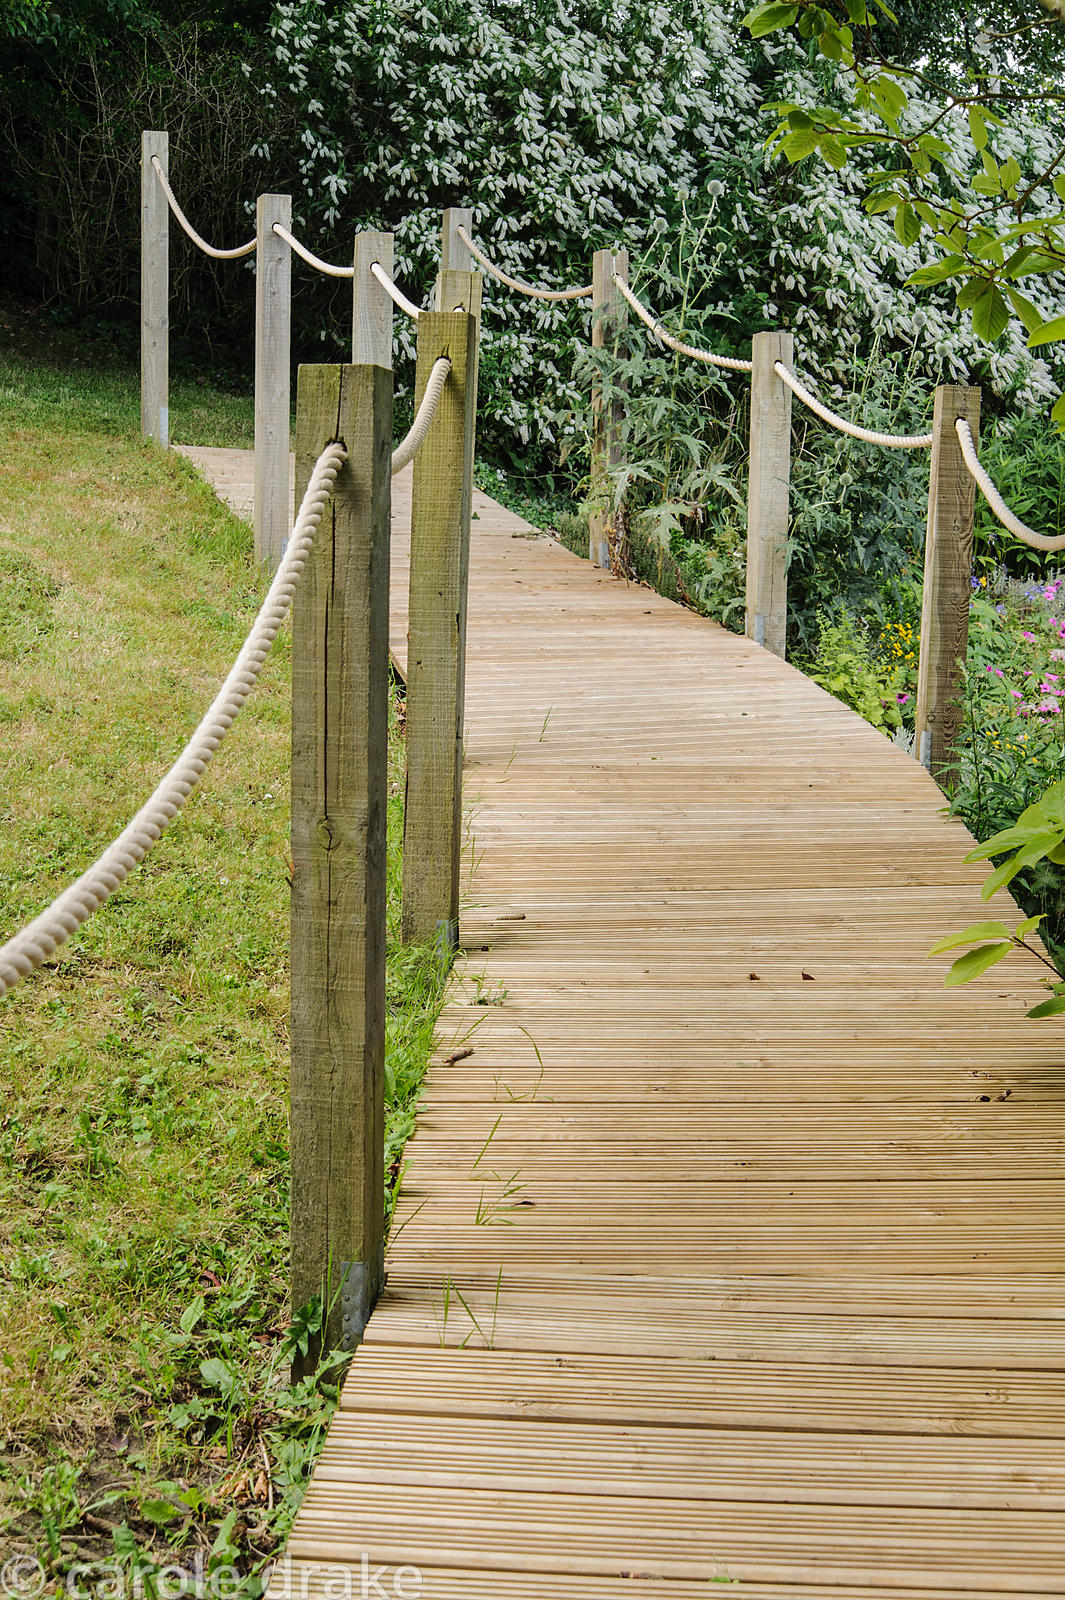 A sturdy boardwalk leads across damp ground down the sloping garden.